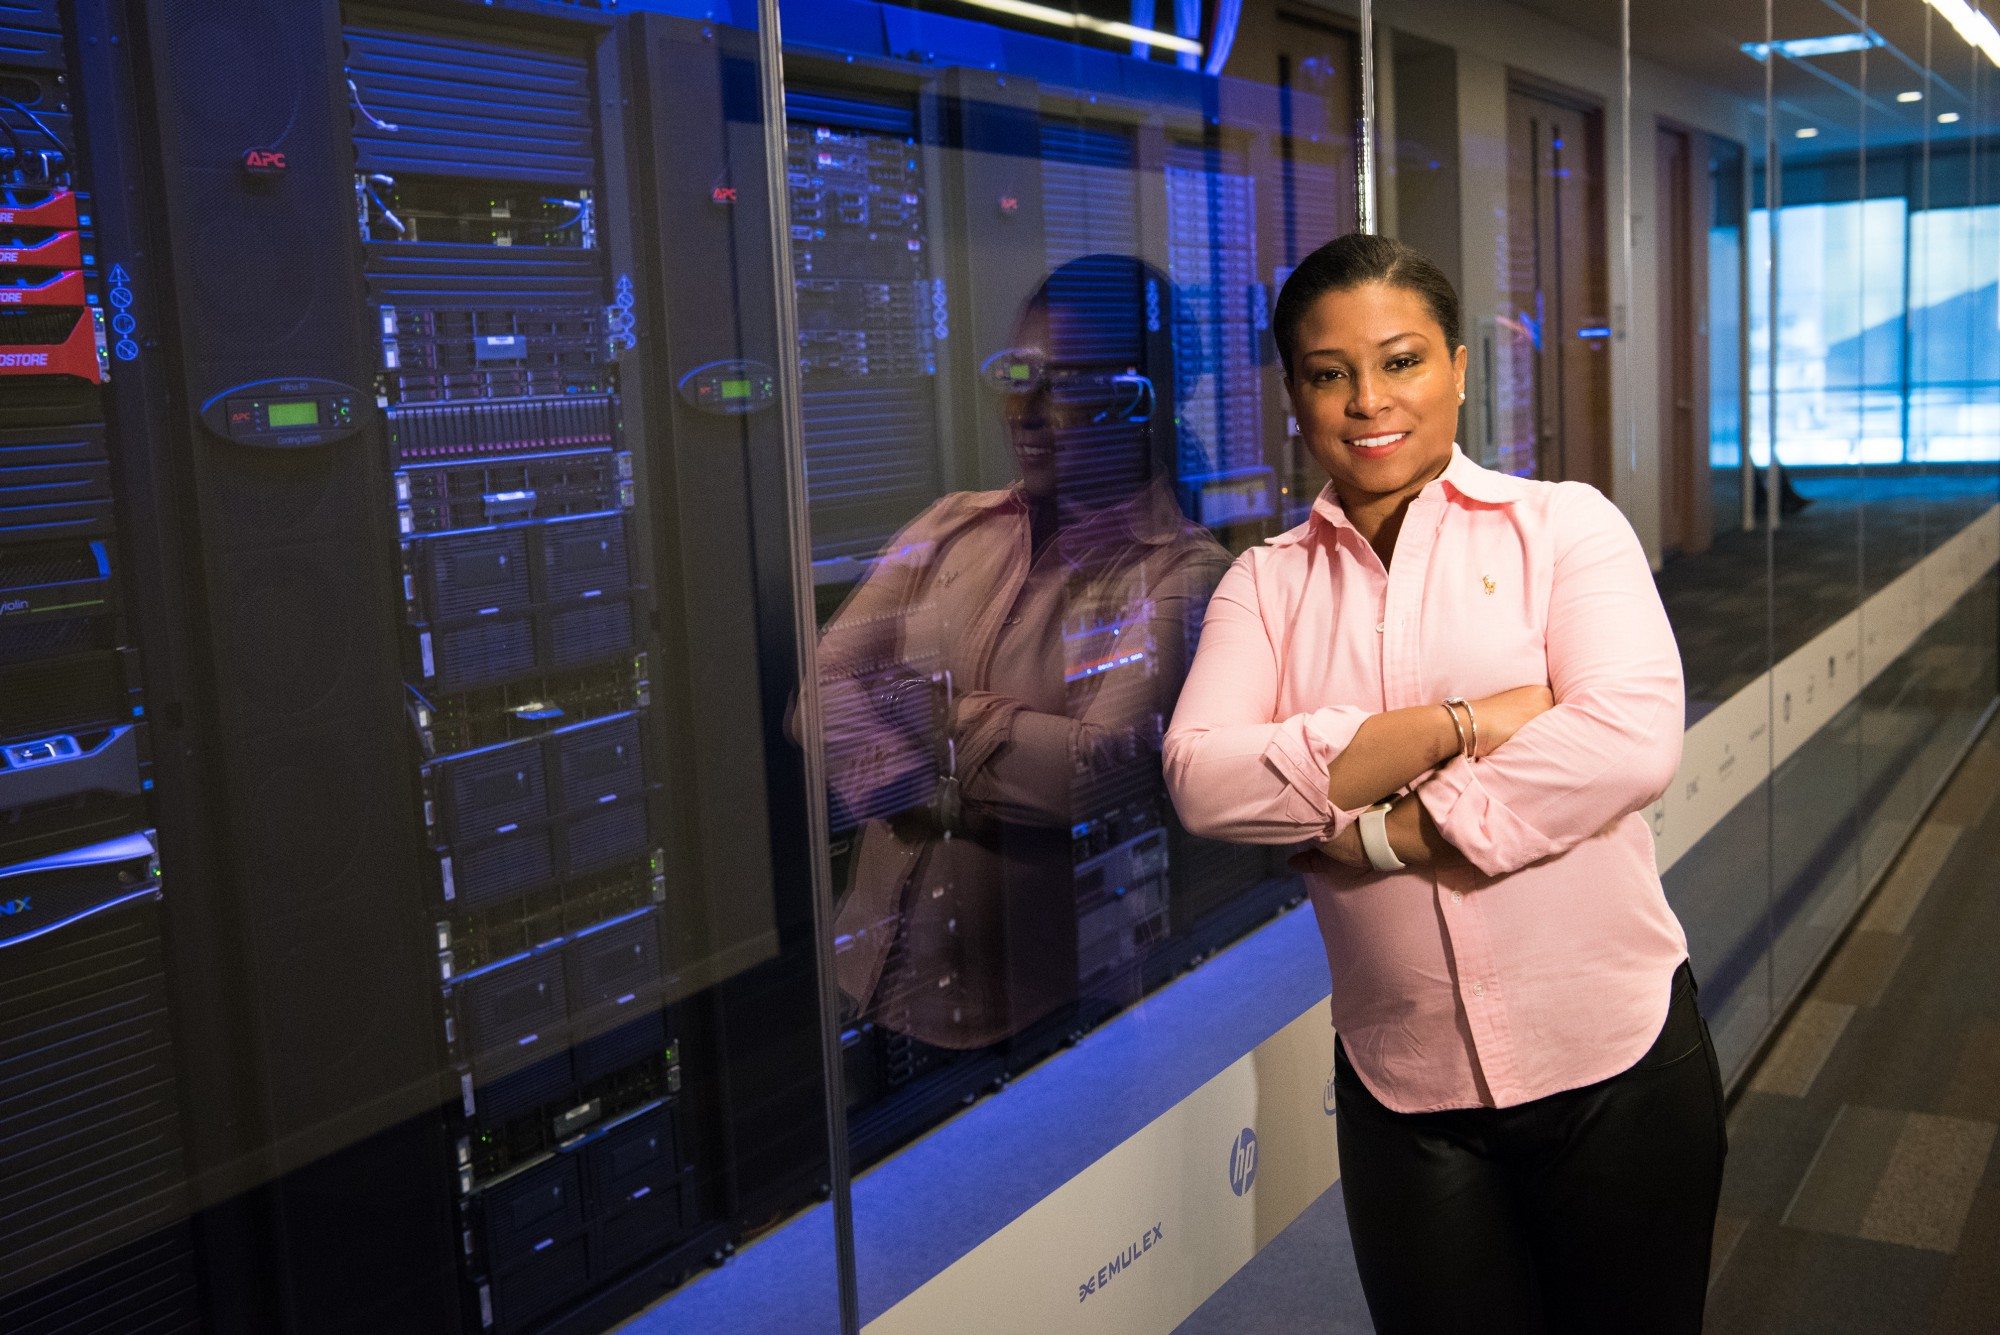 woman stands near to innovative systems